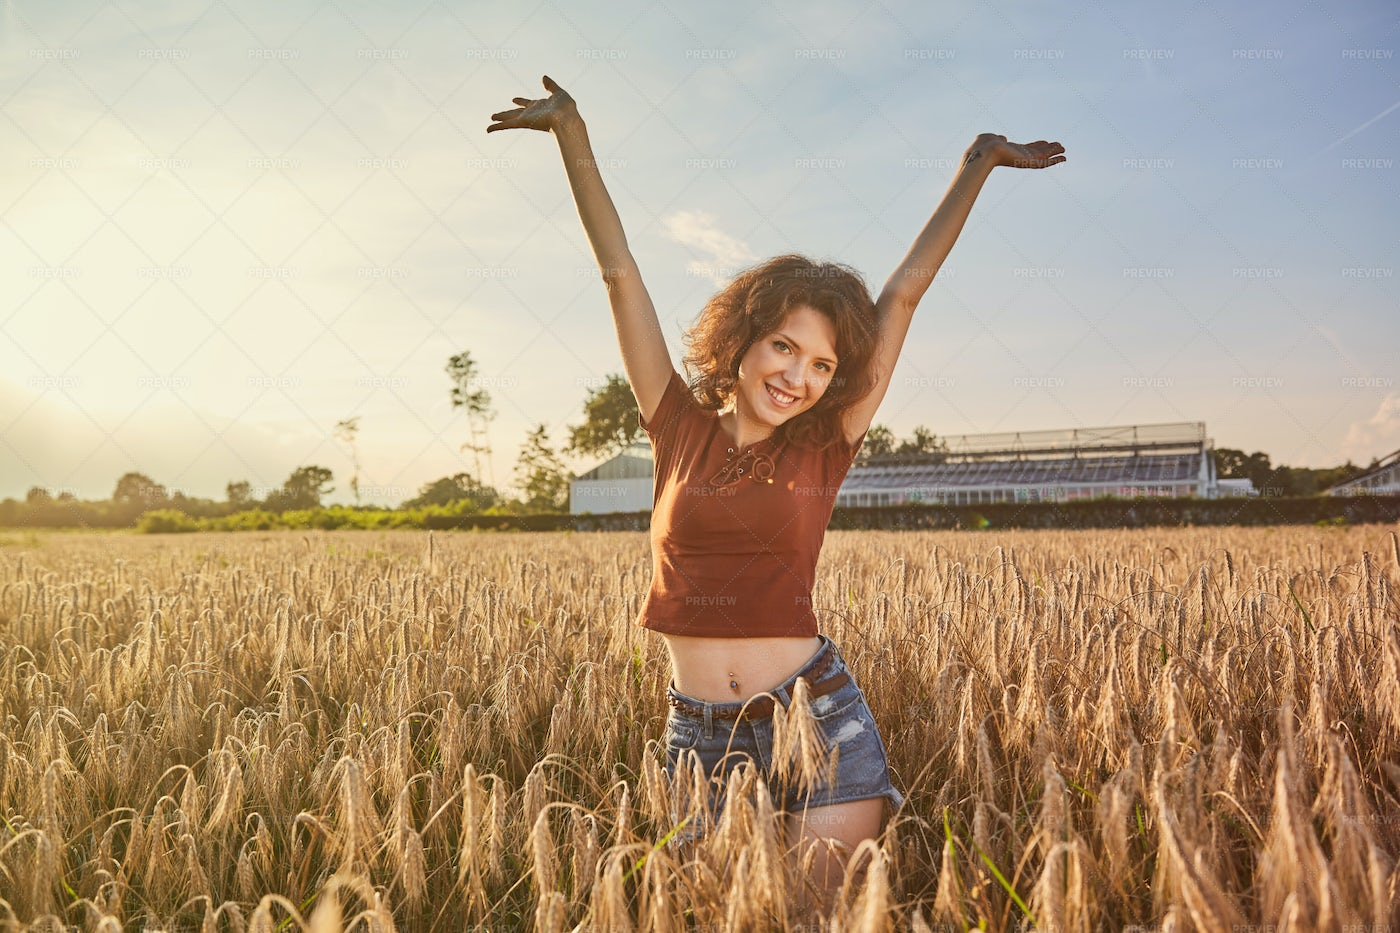 Smiling In A Field: Stock Photos